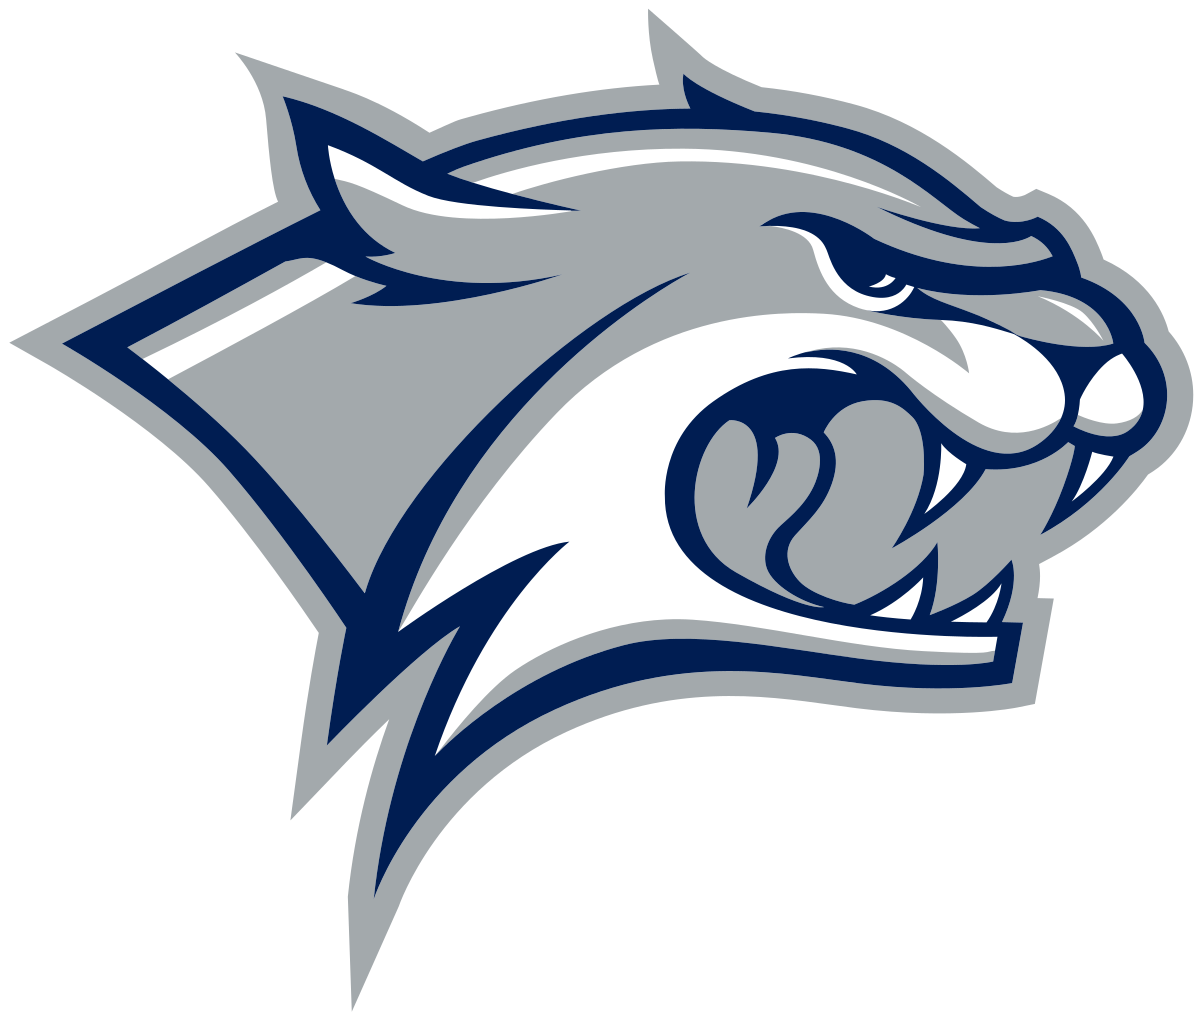 Wildcat football clipart clip Sizing up the Wildcats | Sports | thegeorgeanne.com clip